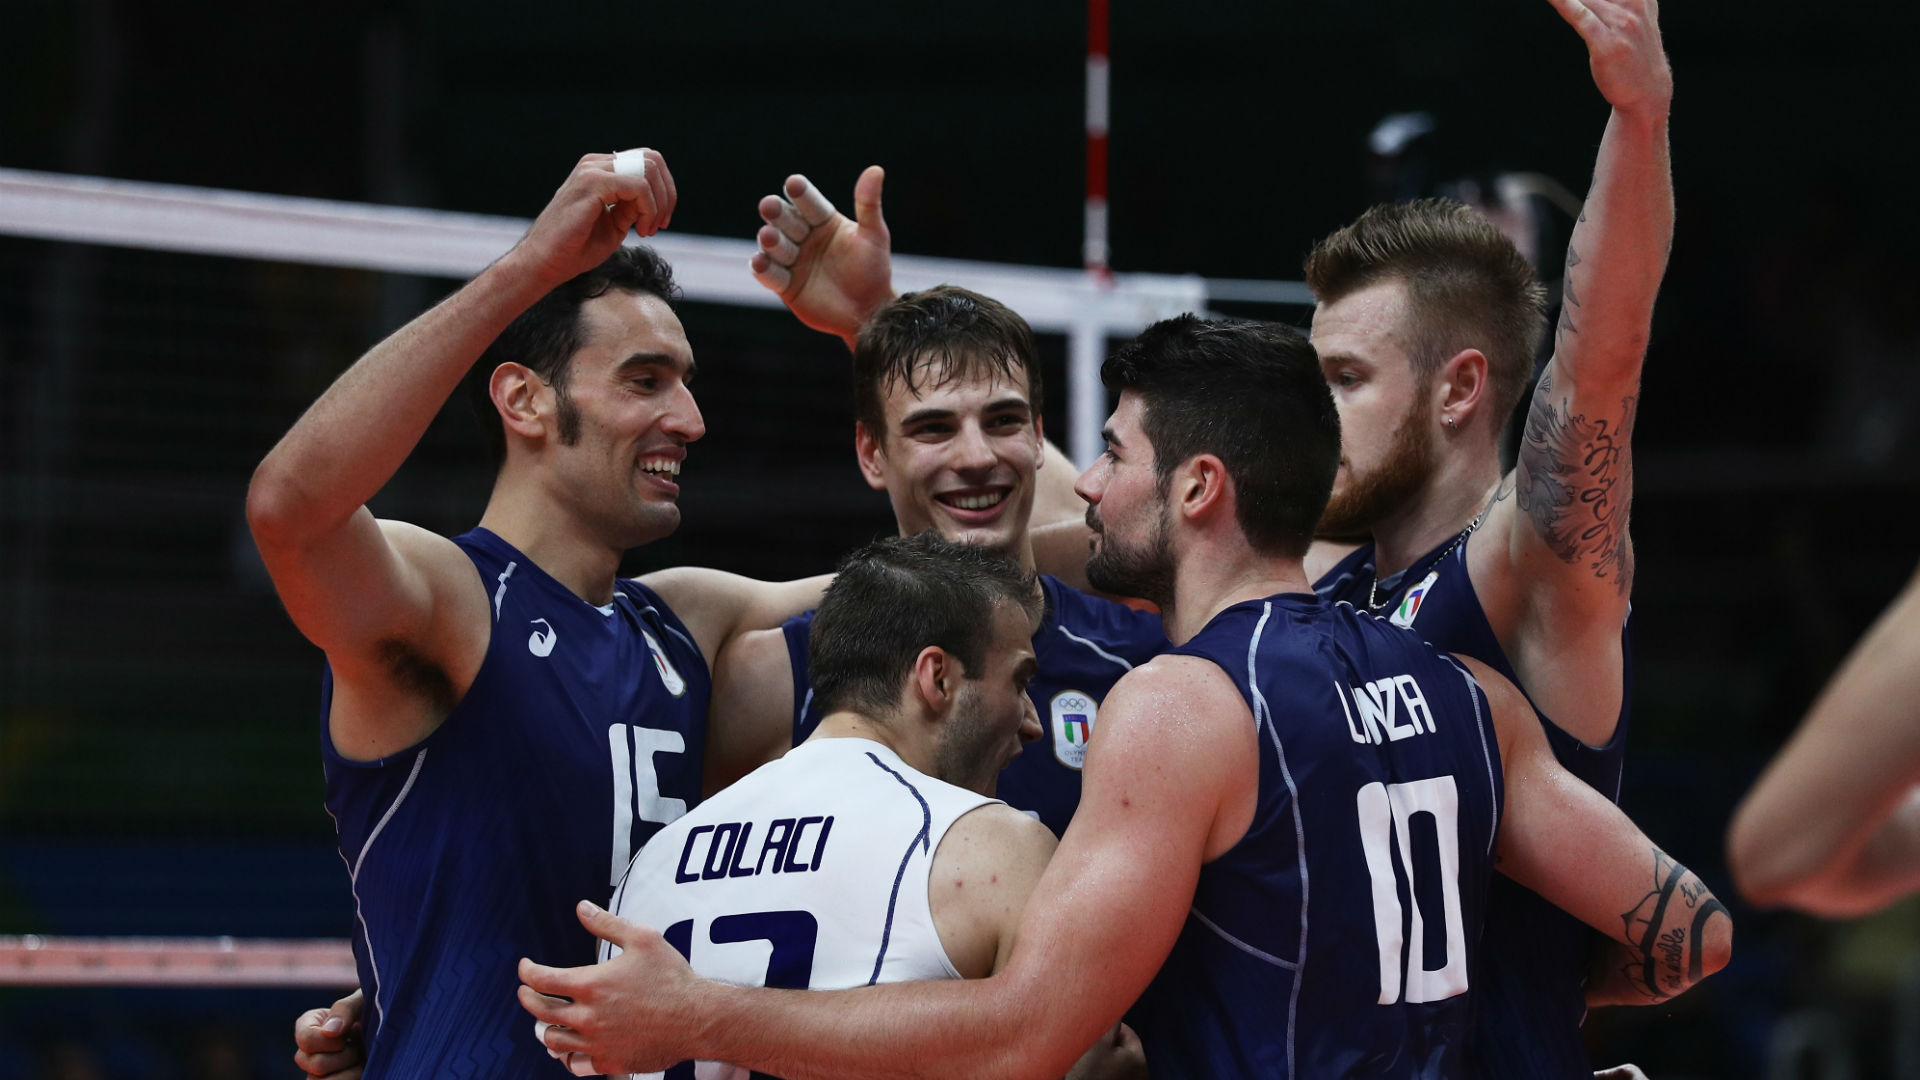 Other | Italy storms back to beat USA men's volleyball ...